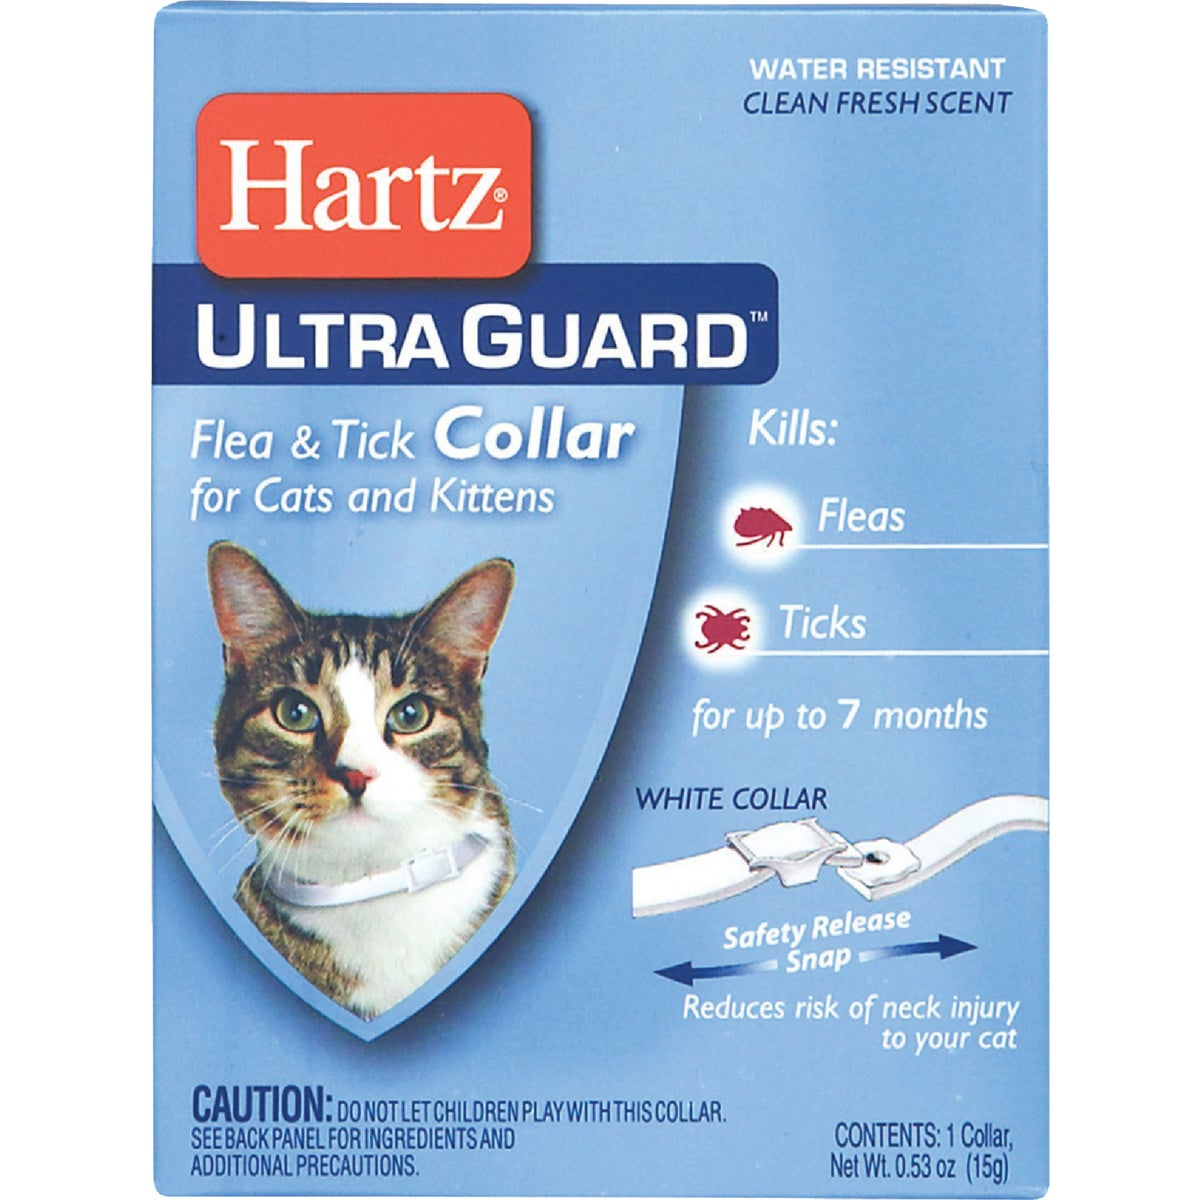 KITTEN & CAT F&T COLLAR - 80483 by Hartz Mountain Corp